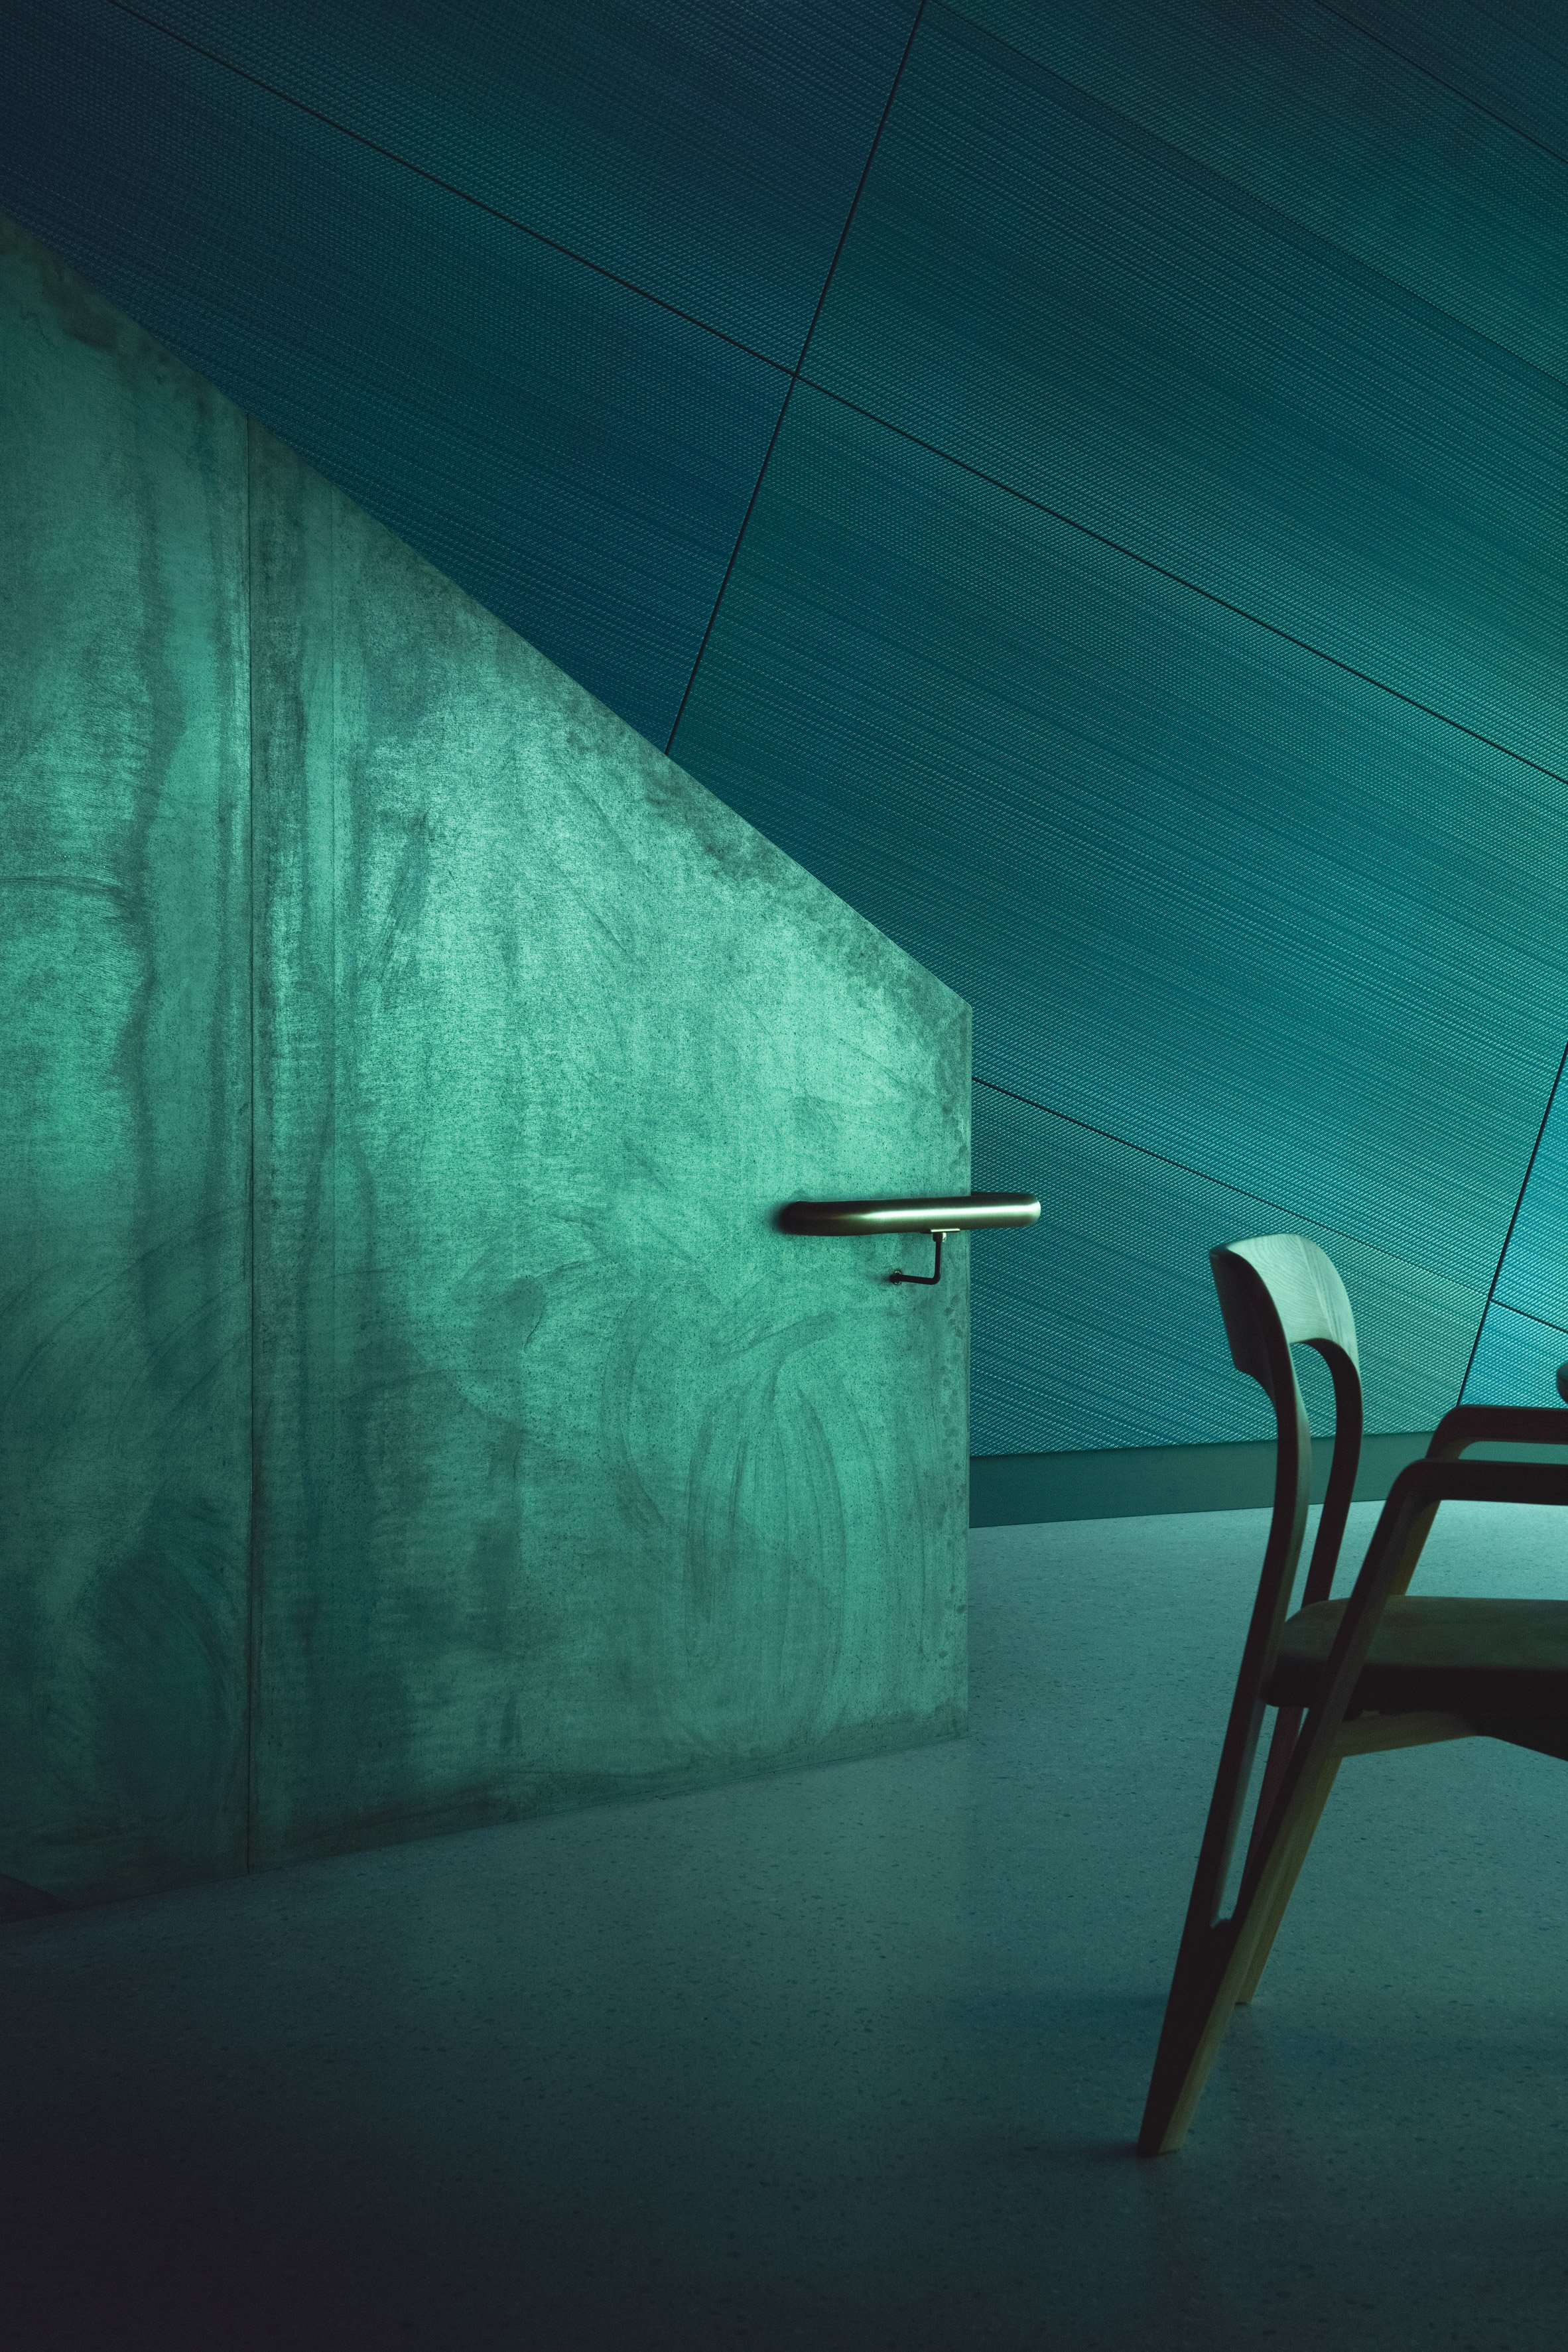 Europe's first underwater restaurant, Under, by Snohetta in Båly, south Norway